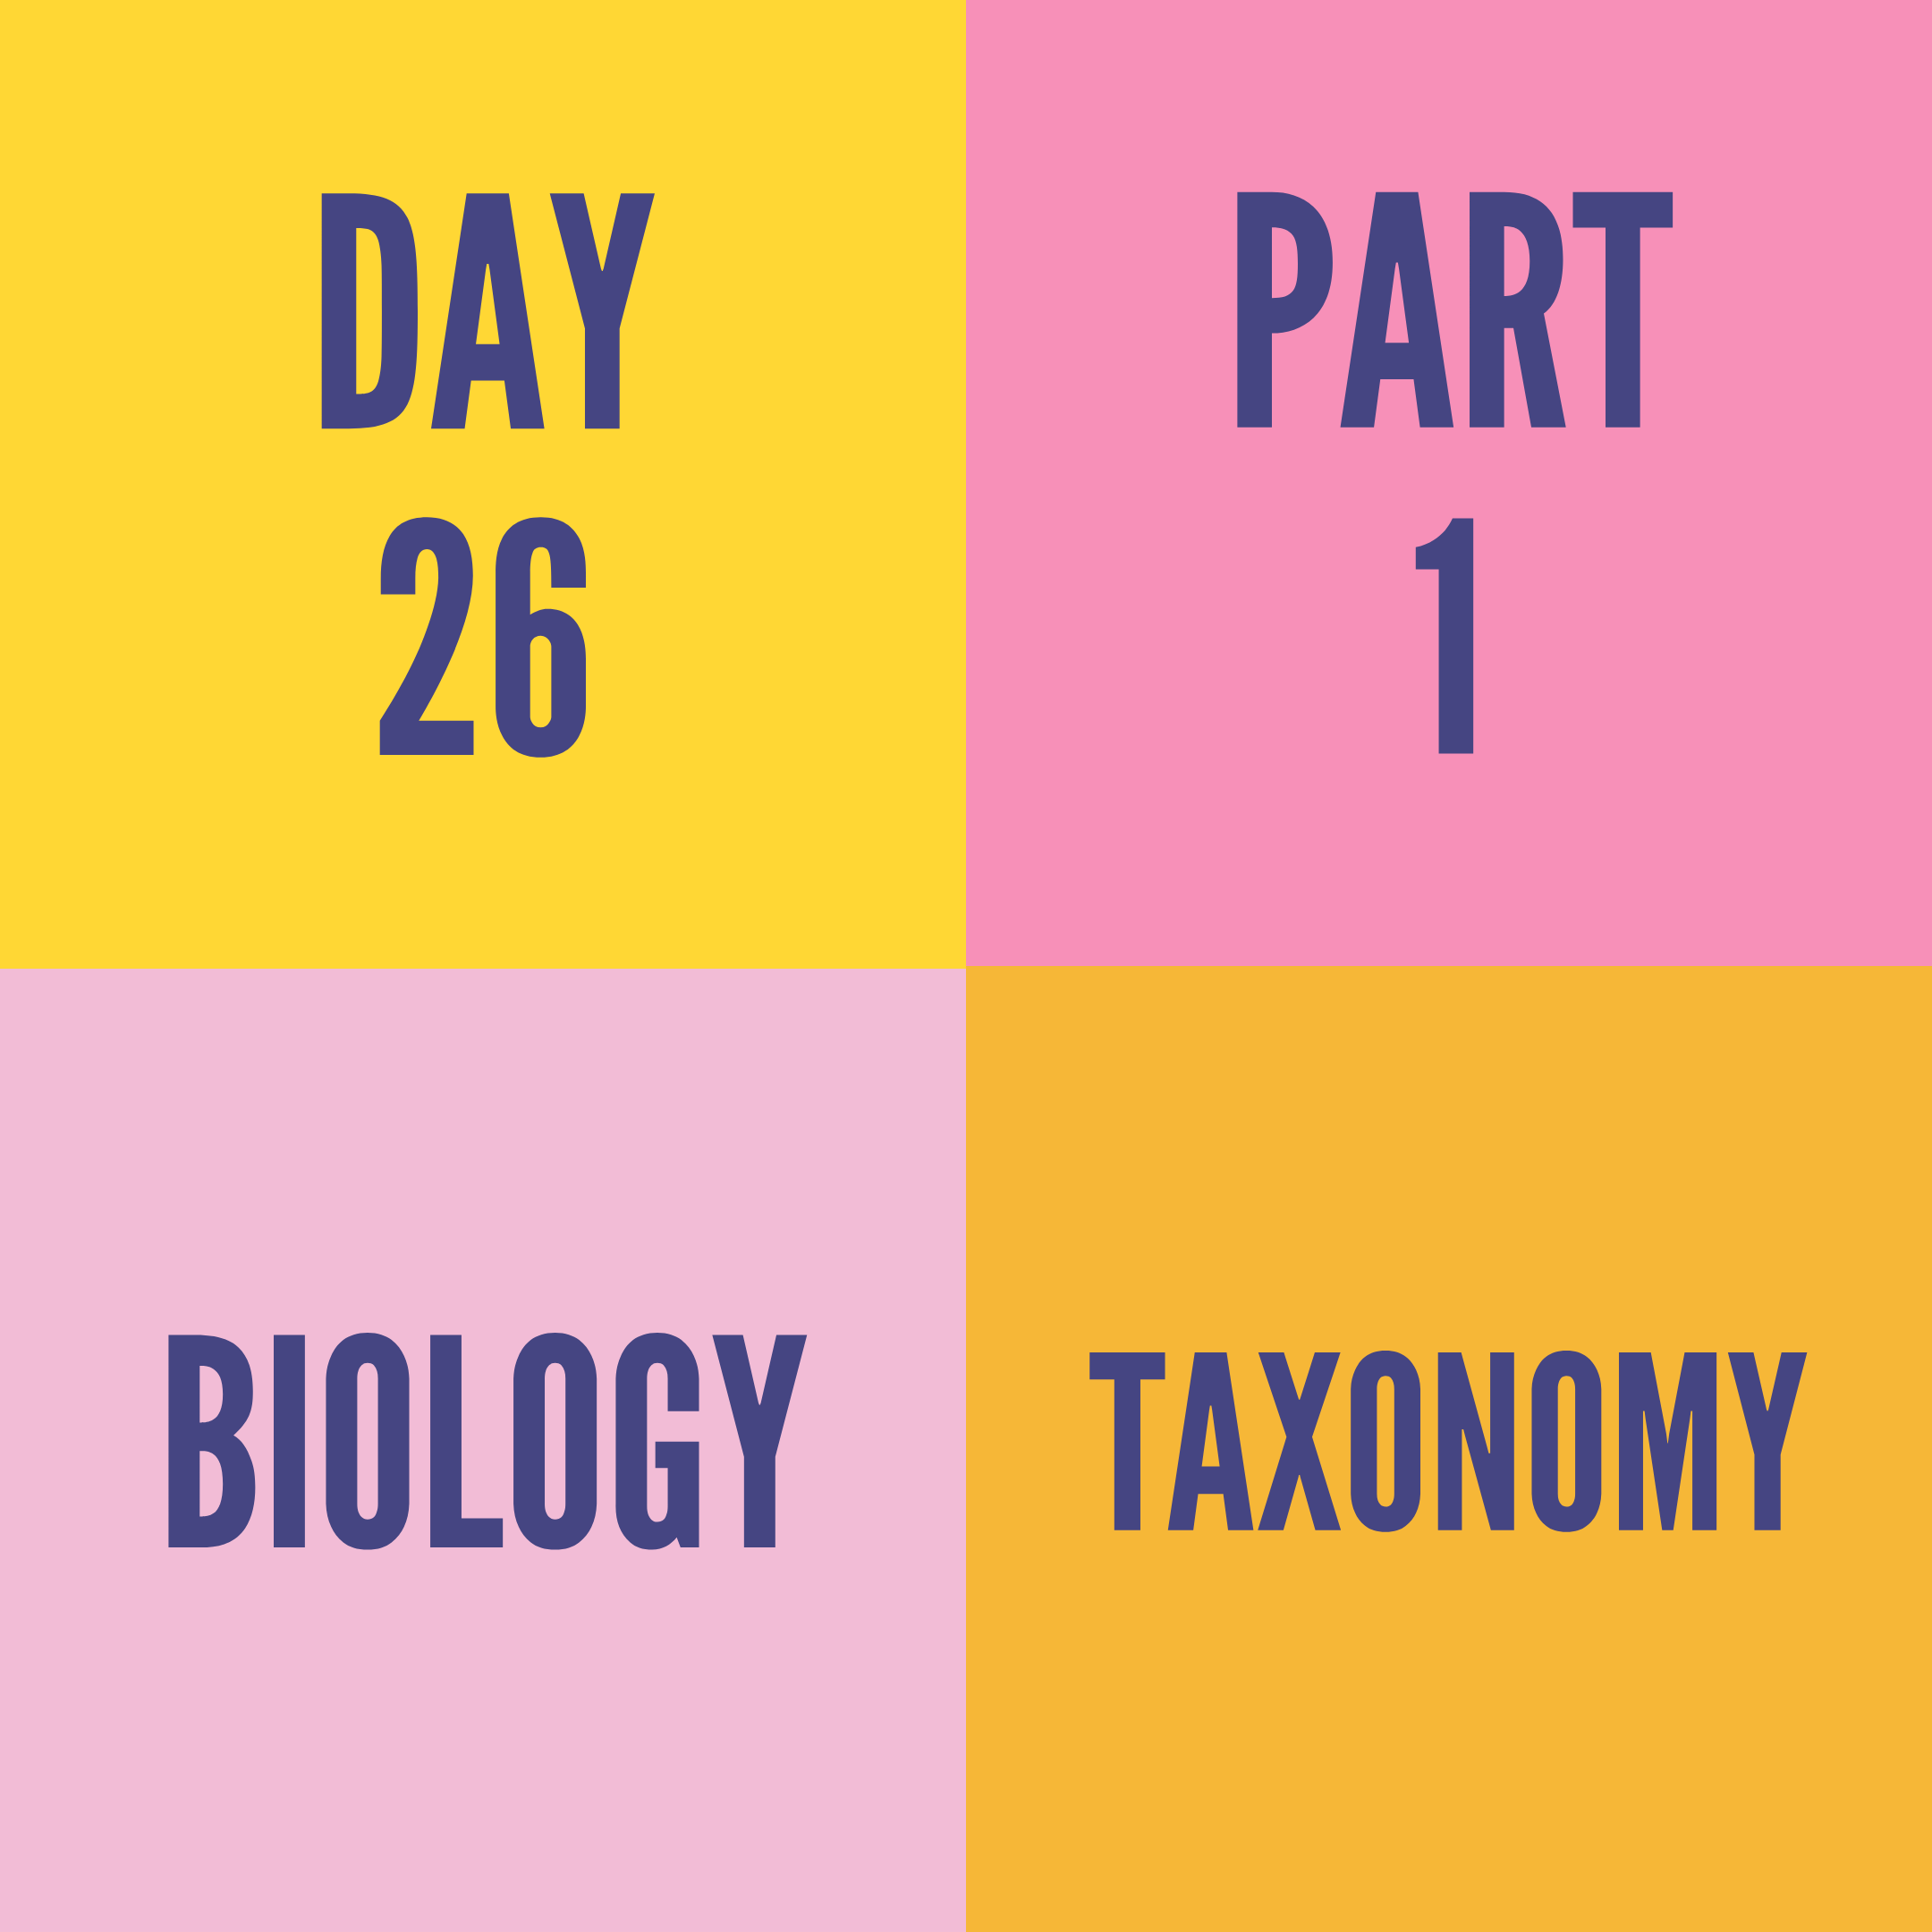 DAY-26 PART-1 TAXONOMY